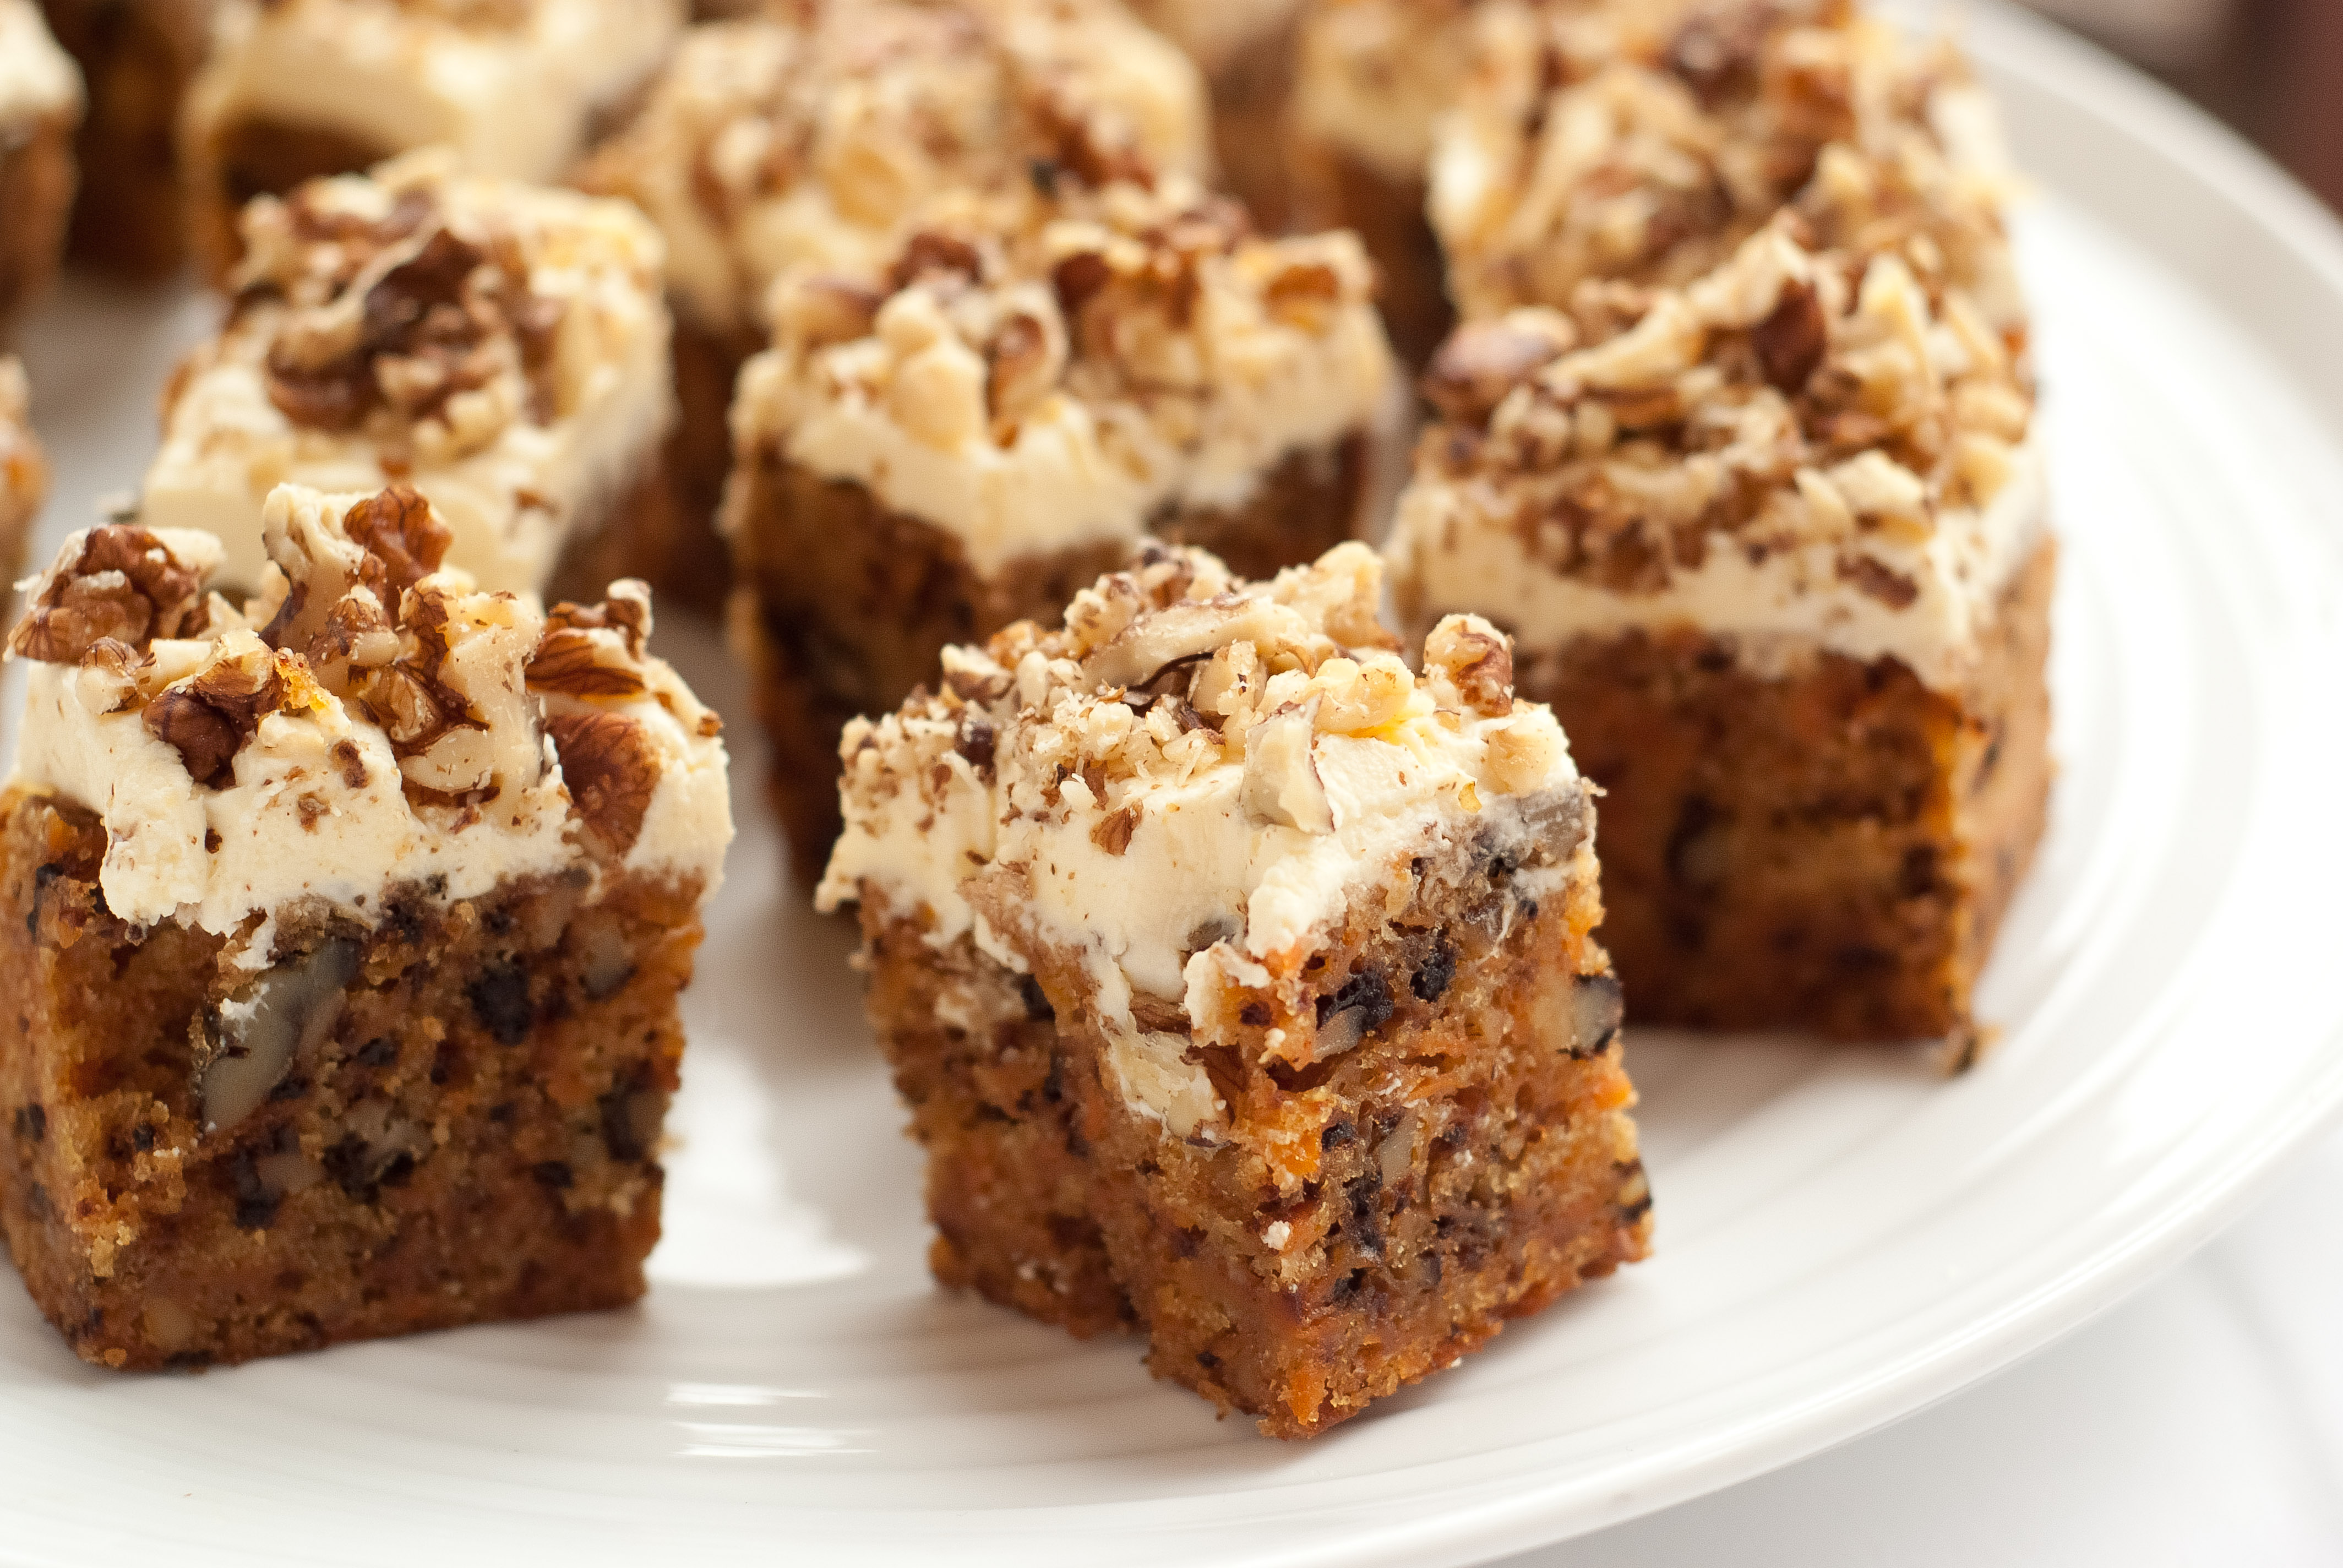 Carrot Cake Recipe Uk With Oil: Recipe Search